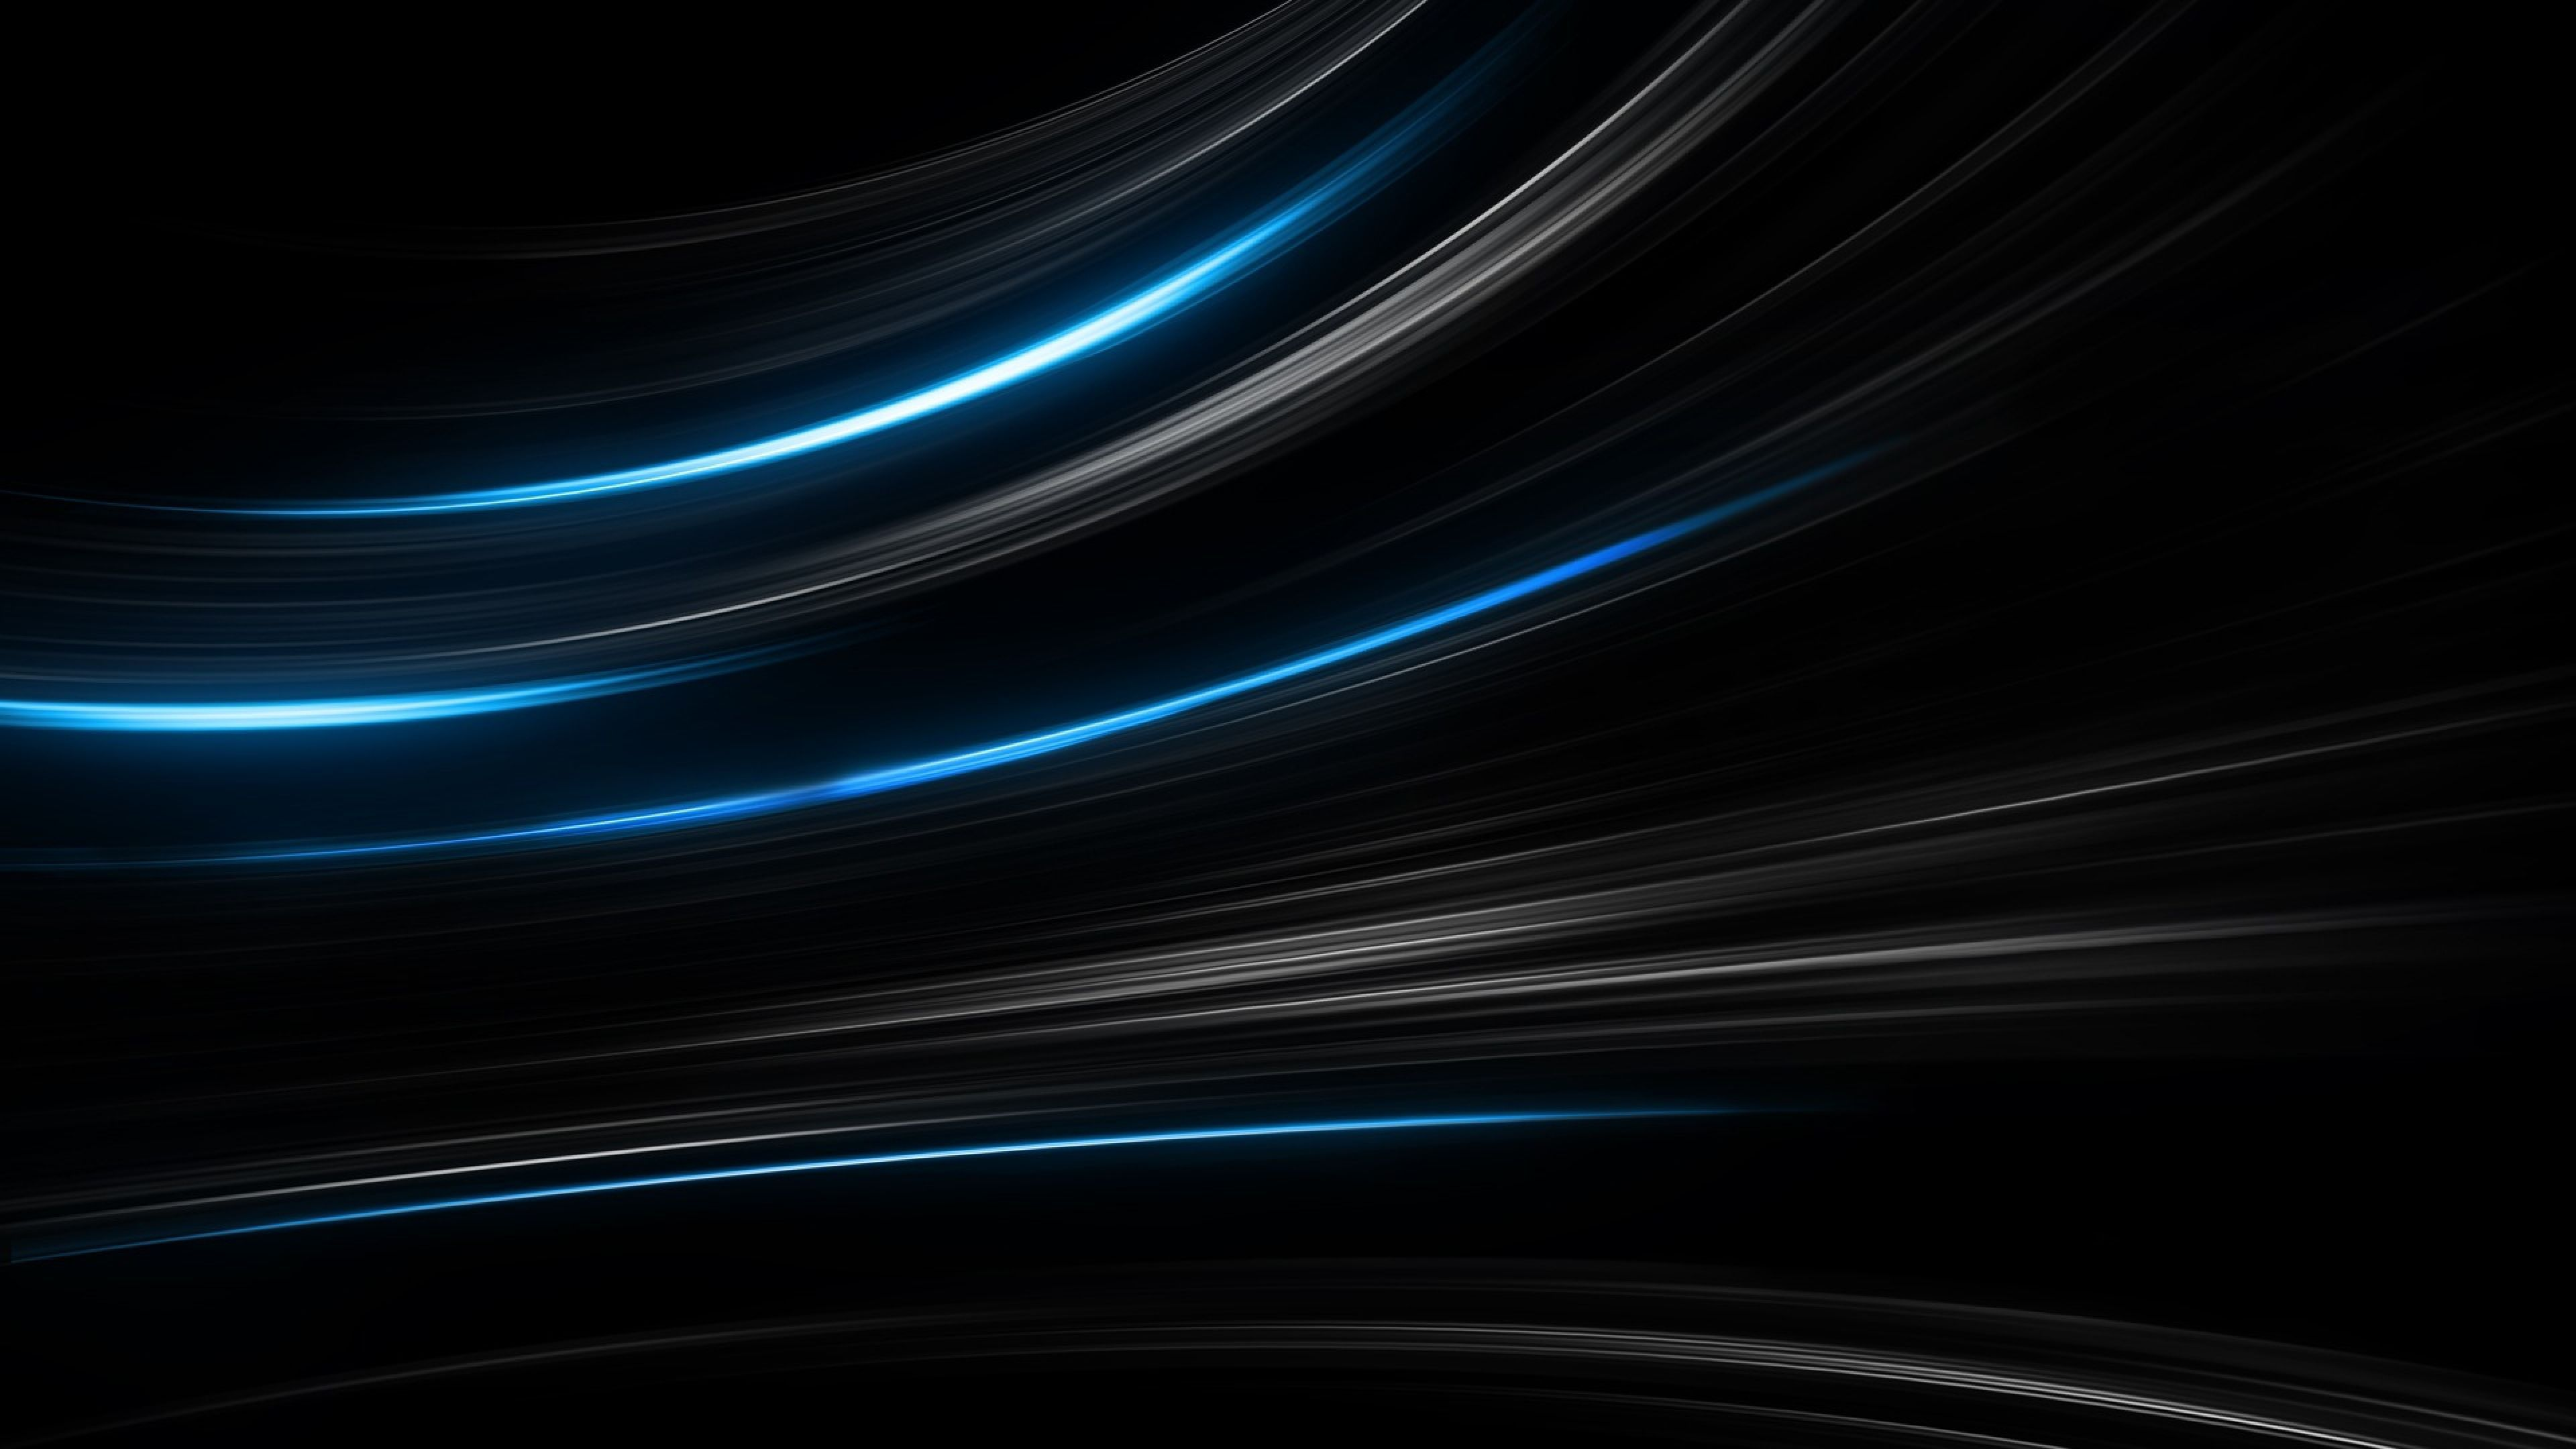 Blue Abstract 4k Wallpaper Dark Blue Wallpaper Black And Blue Wallpaper Abstract Wallpaper